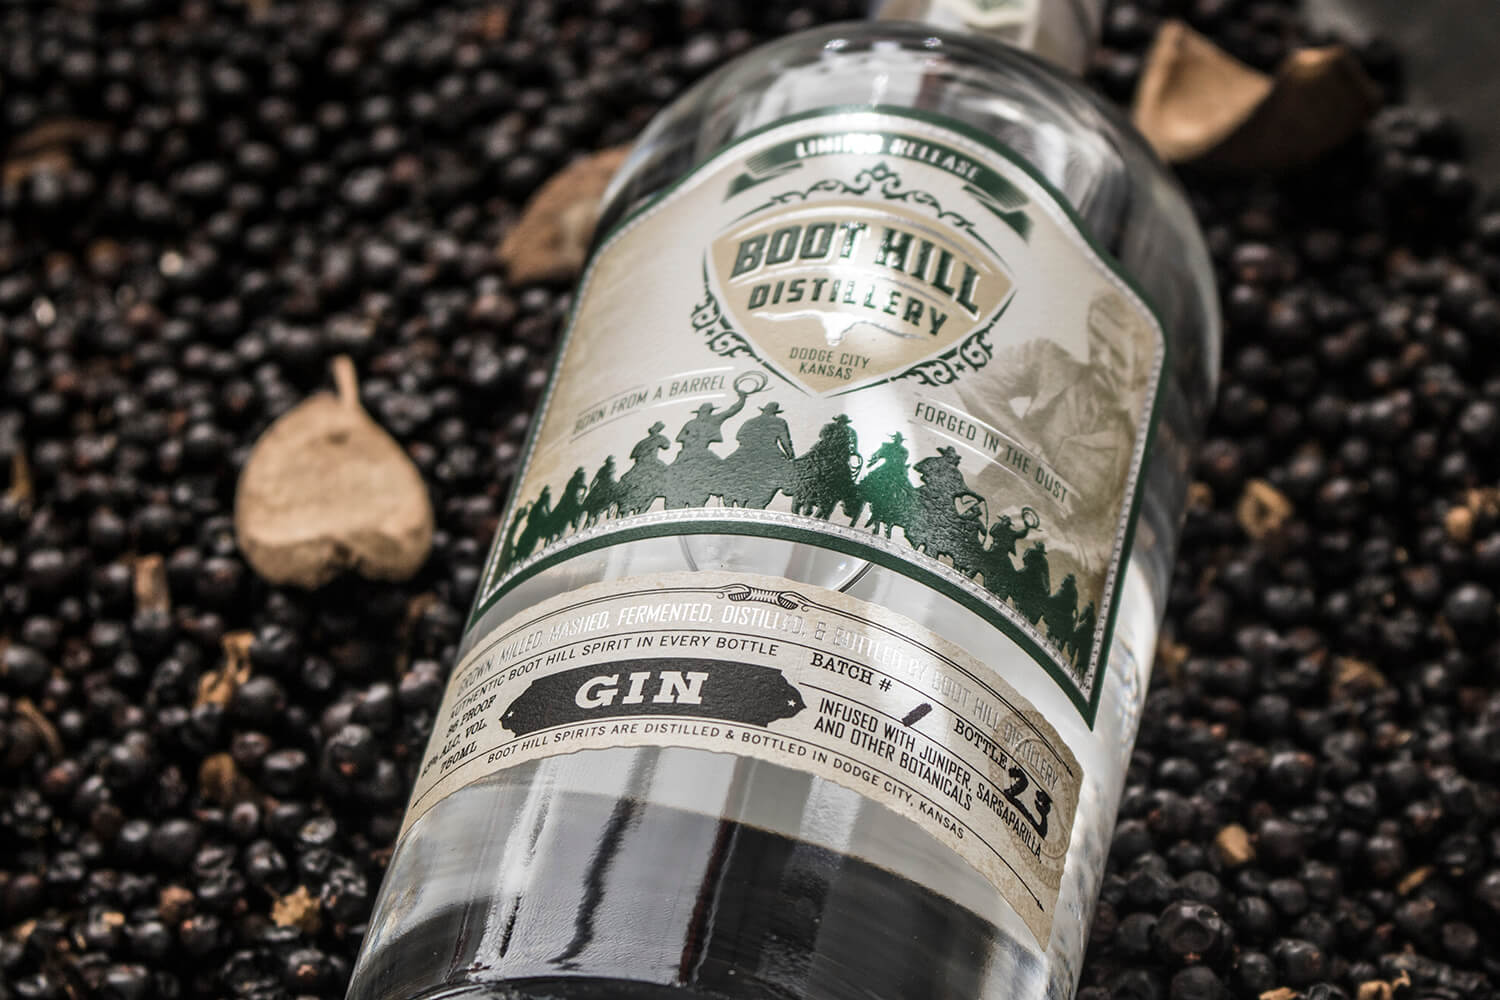 Boot Hill Gin